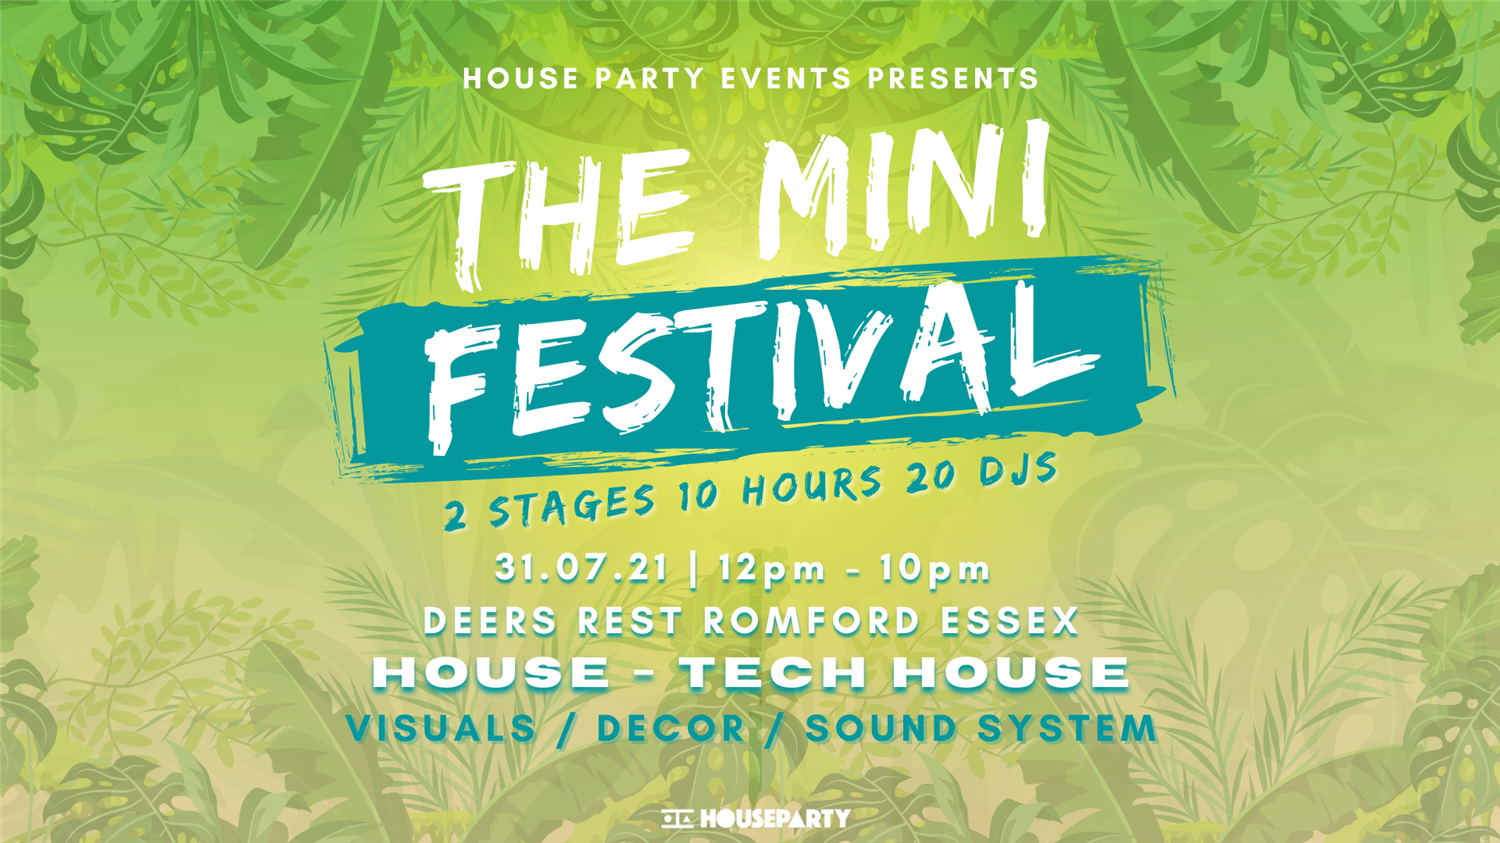 The Mini Festival Essex  on Jul 31, 12:00@Deers Rest - Buy tickets and Get information on House Party Europe Ltd